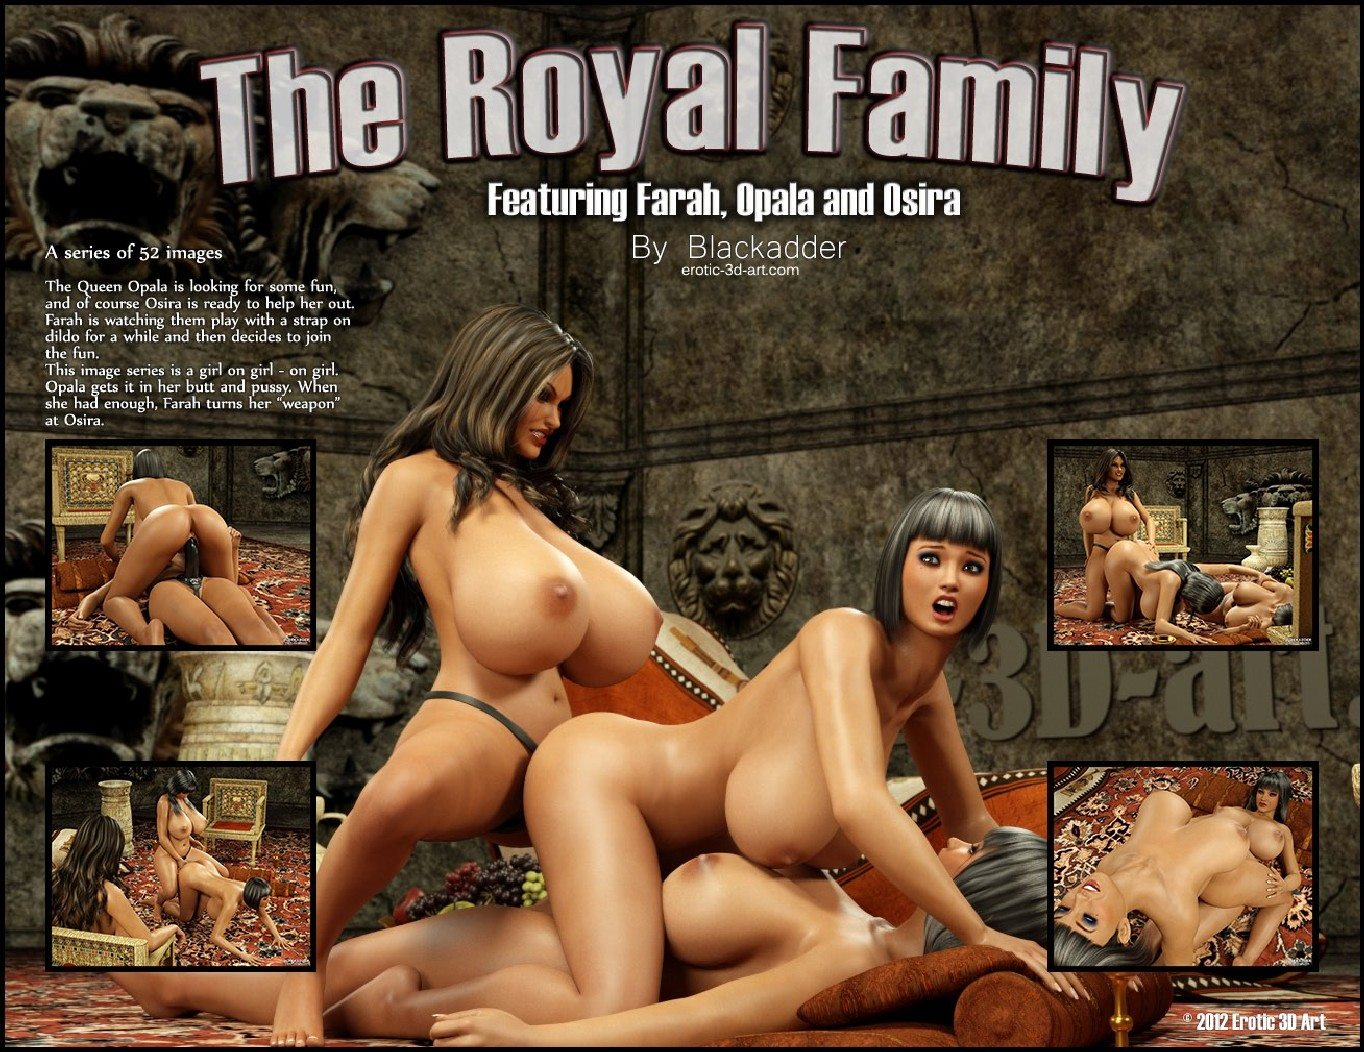 Porn Comics - Blackadder -The Royal Family porn comics 8 muses